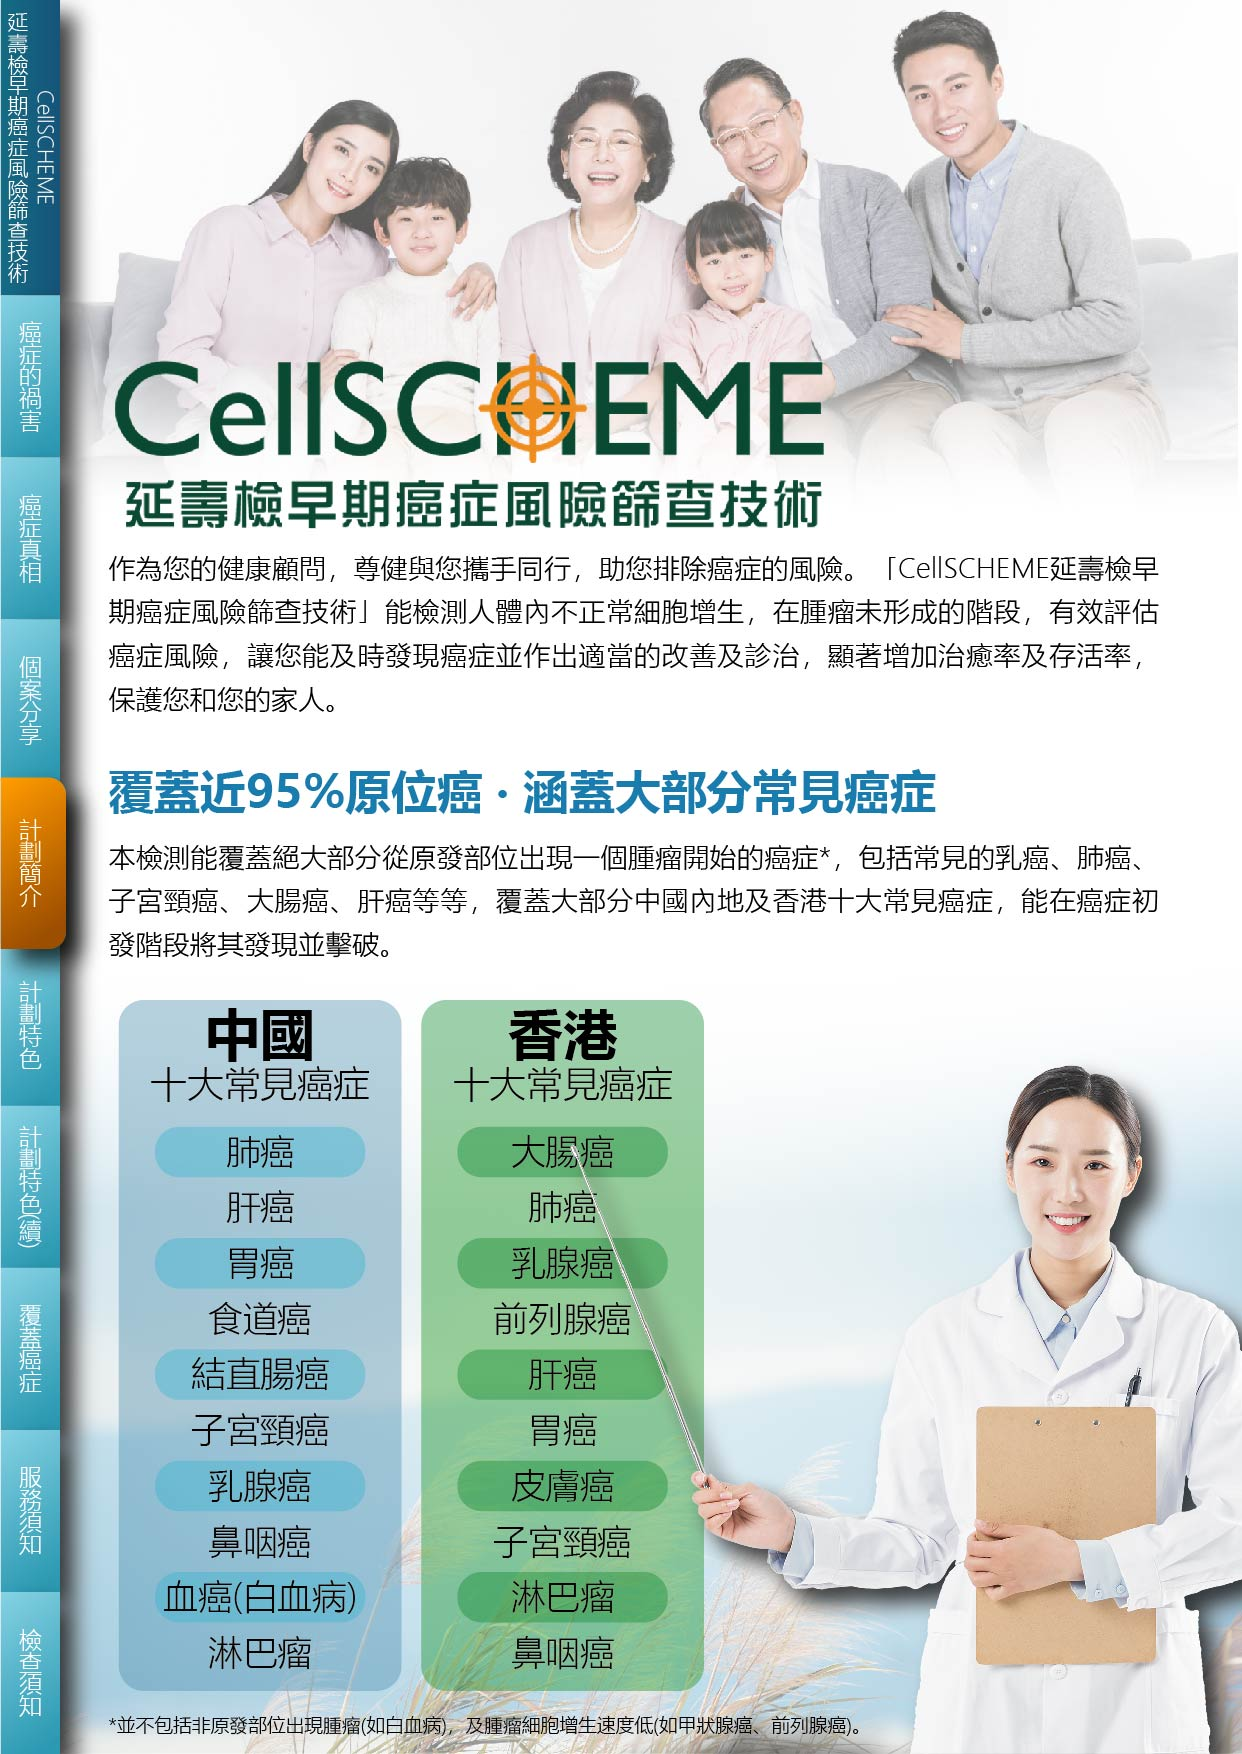 cellscheme-cancer-risk-5.jpg